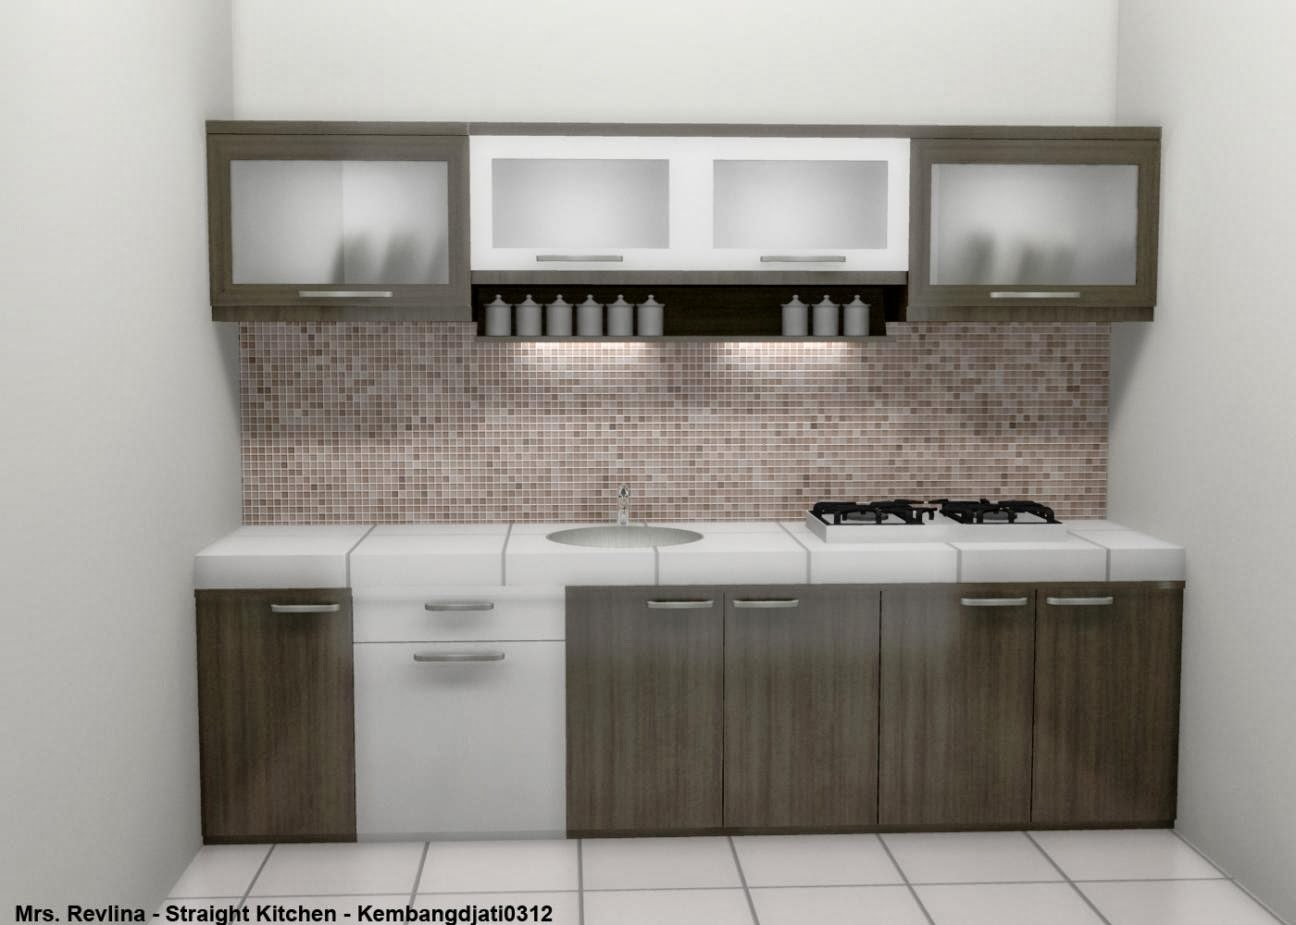 Kombinasi warna keramik dinding dapur best attractive home for Harga kitchen set aluminium per meter